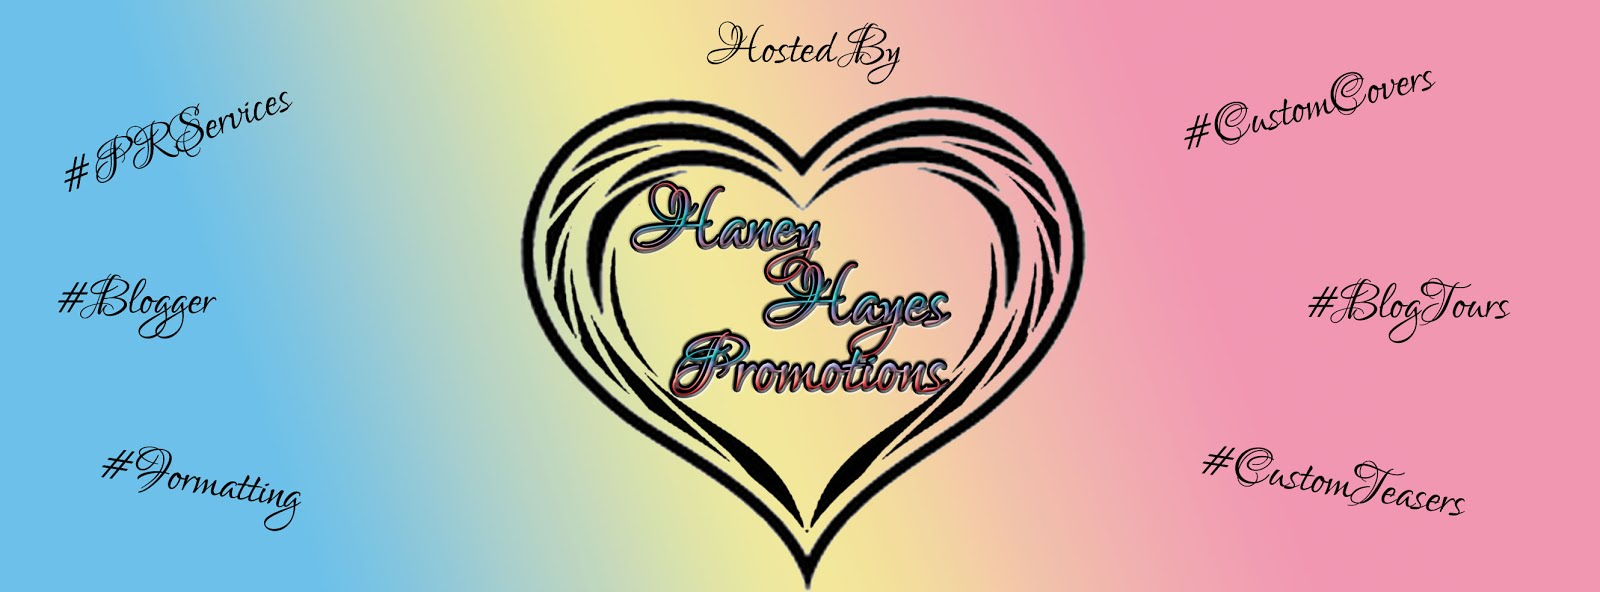 Haney Hayes Promotions